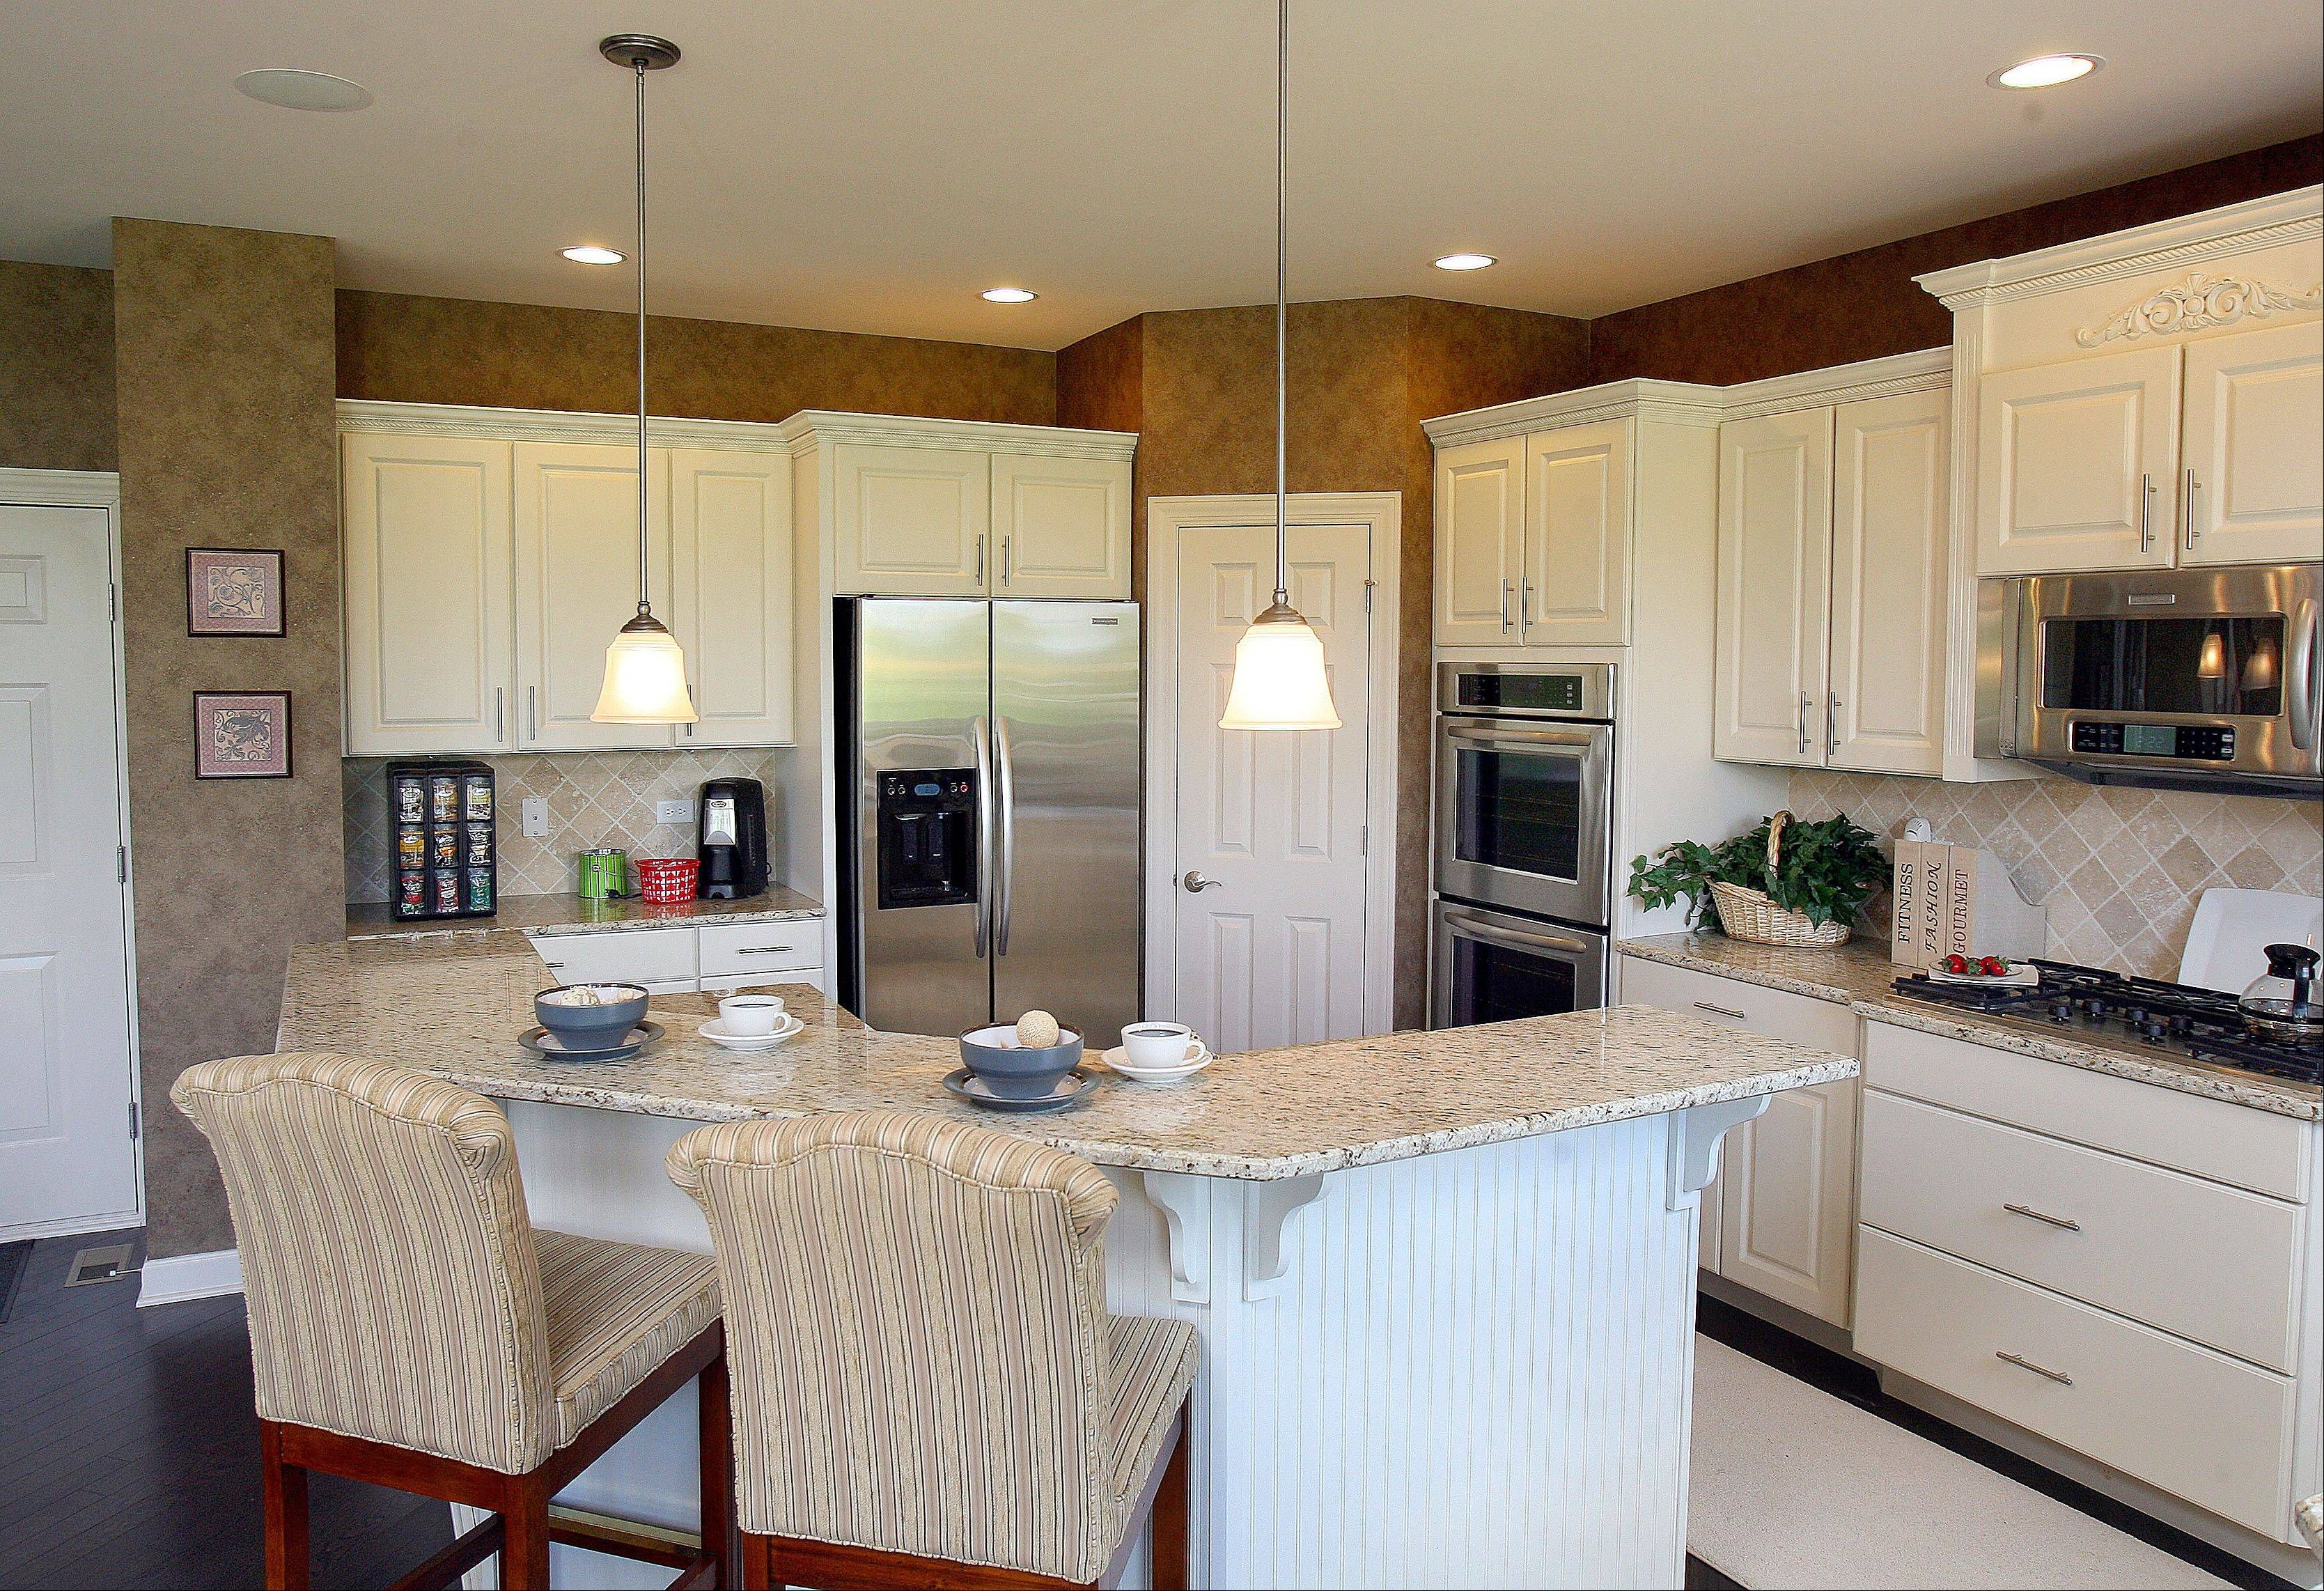 The Kitchen In The Bainbridge Model Features A Large Island With Breakfast Bar And A Corner Walk In Pantry Corner Pantry Corner Kitchen Pantry Pantry Layout